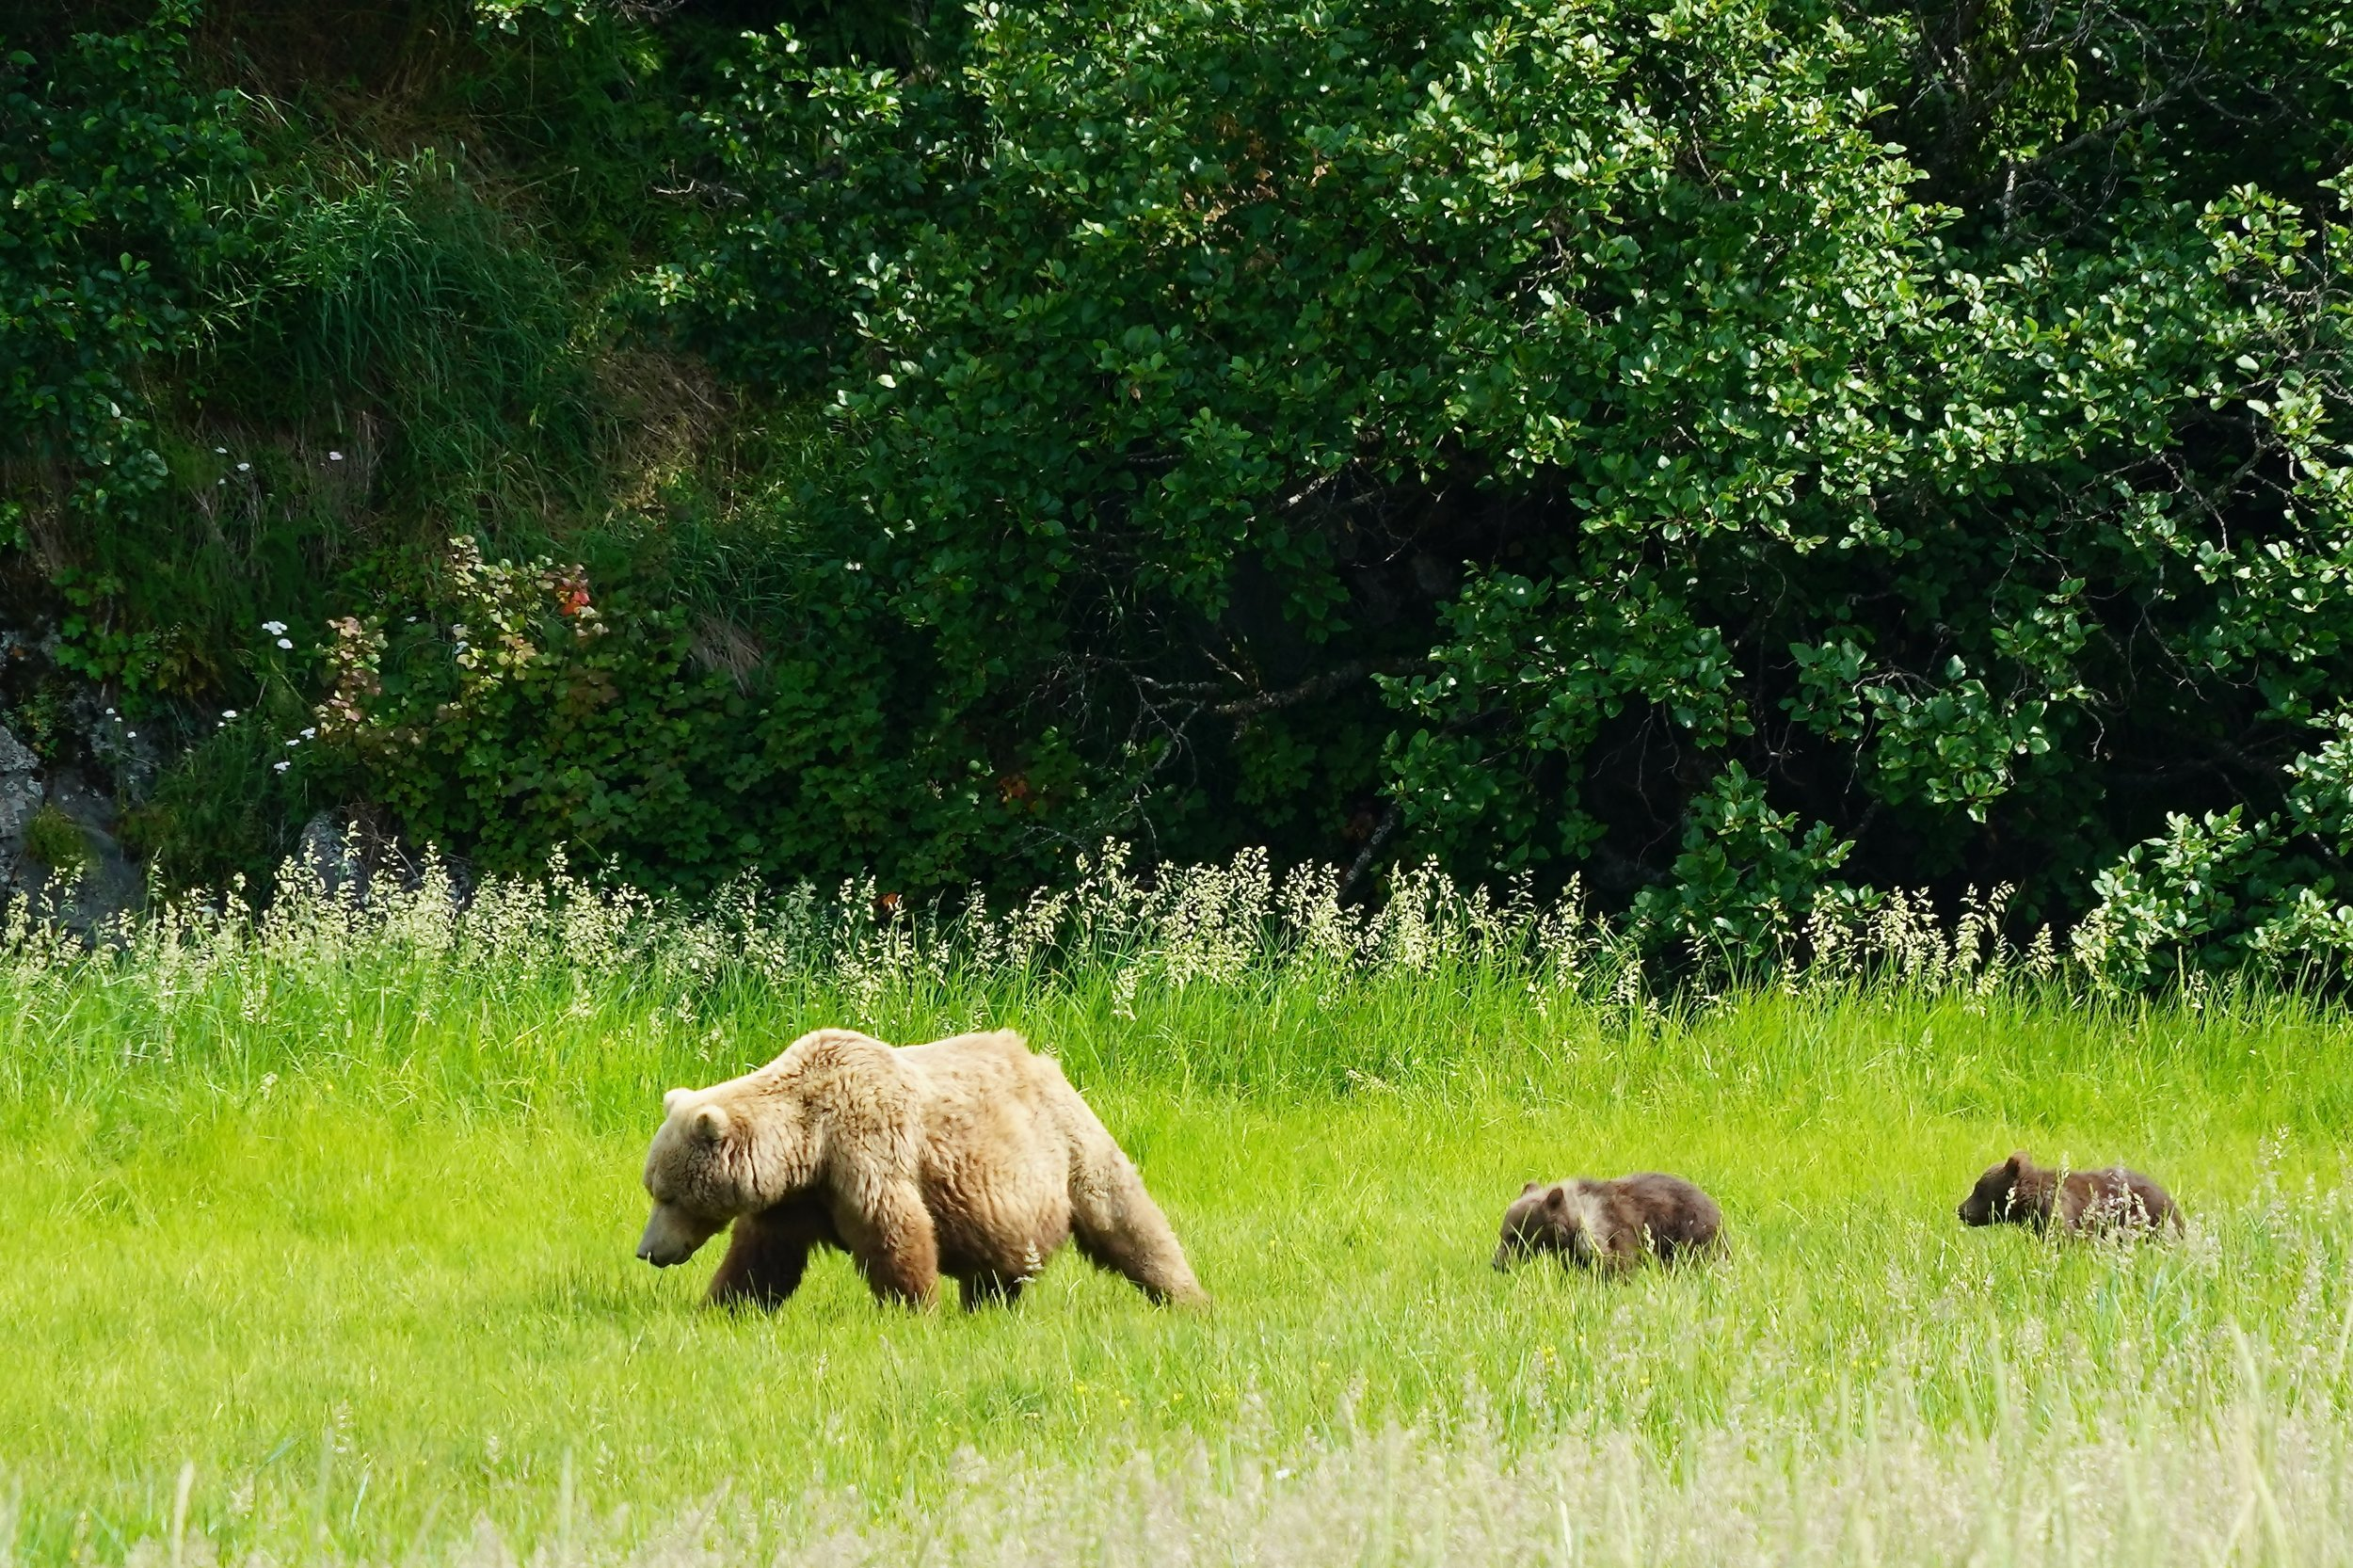 7/See bears in the wild